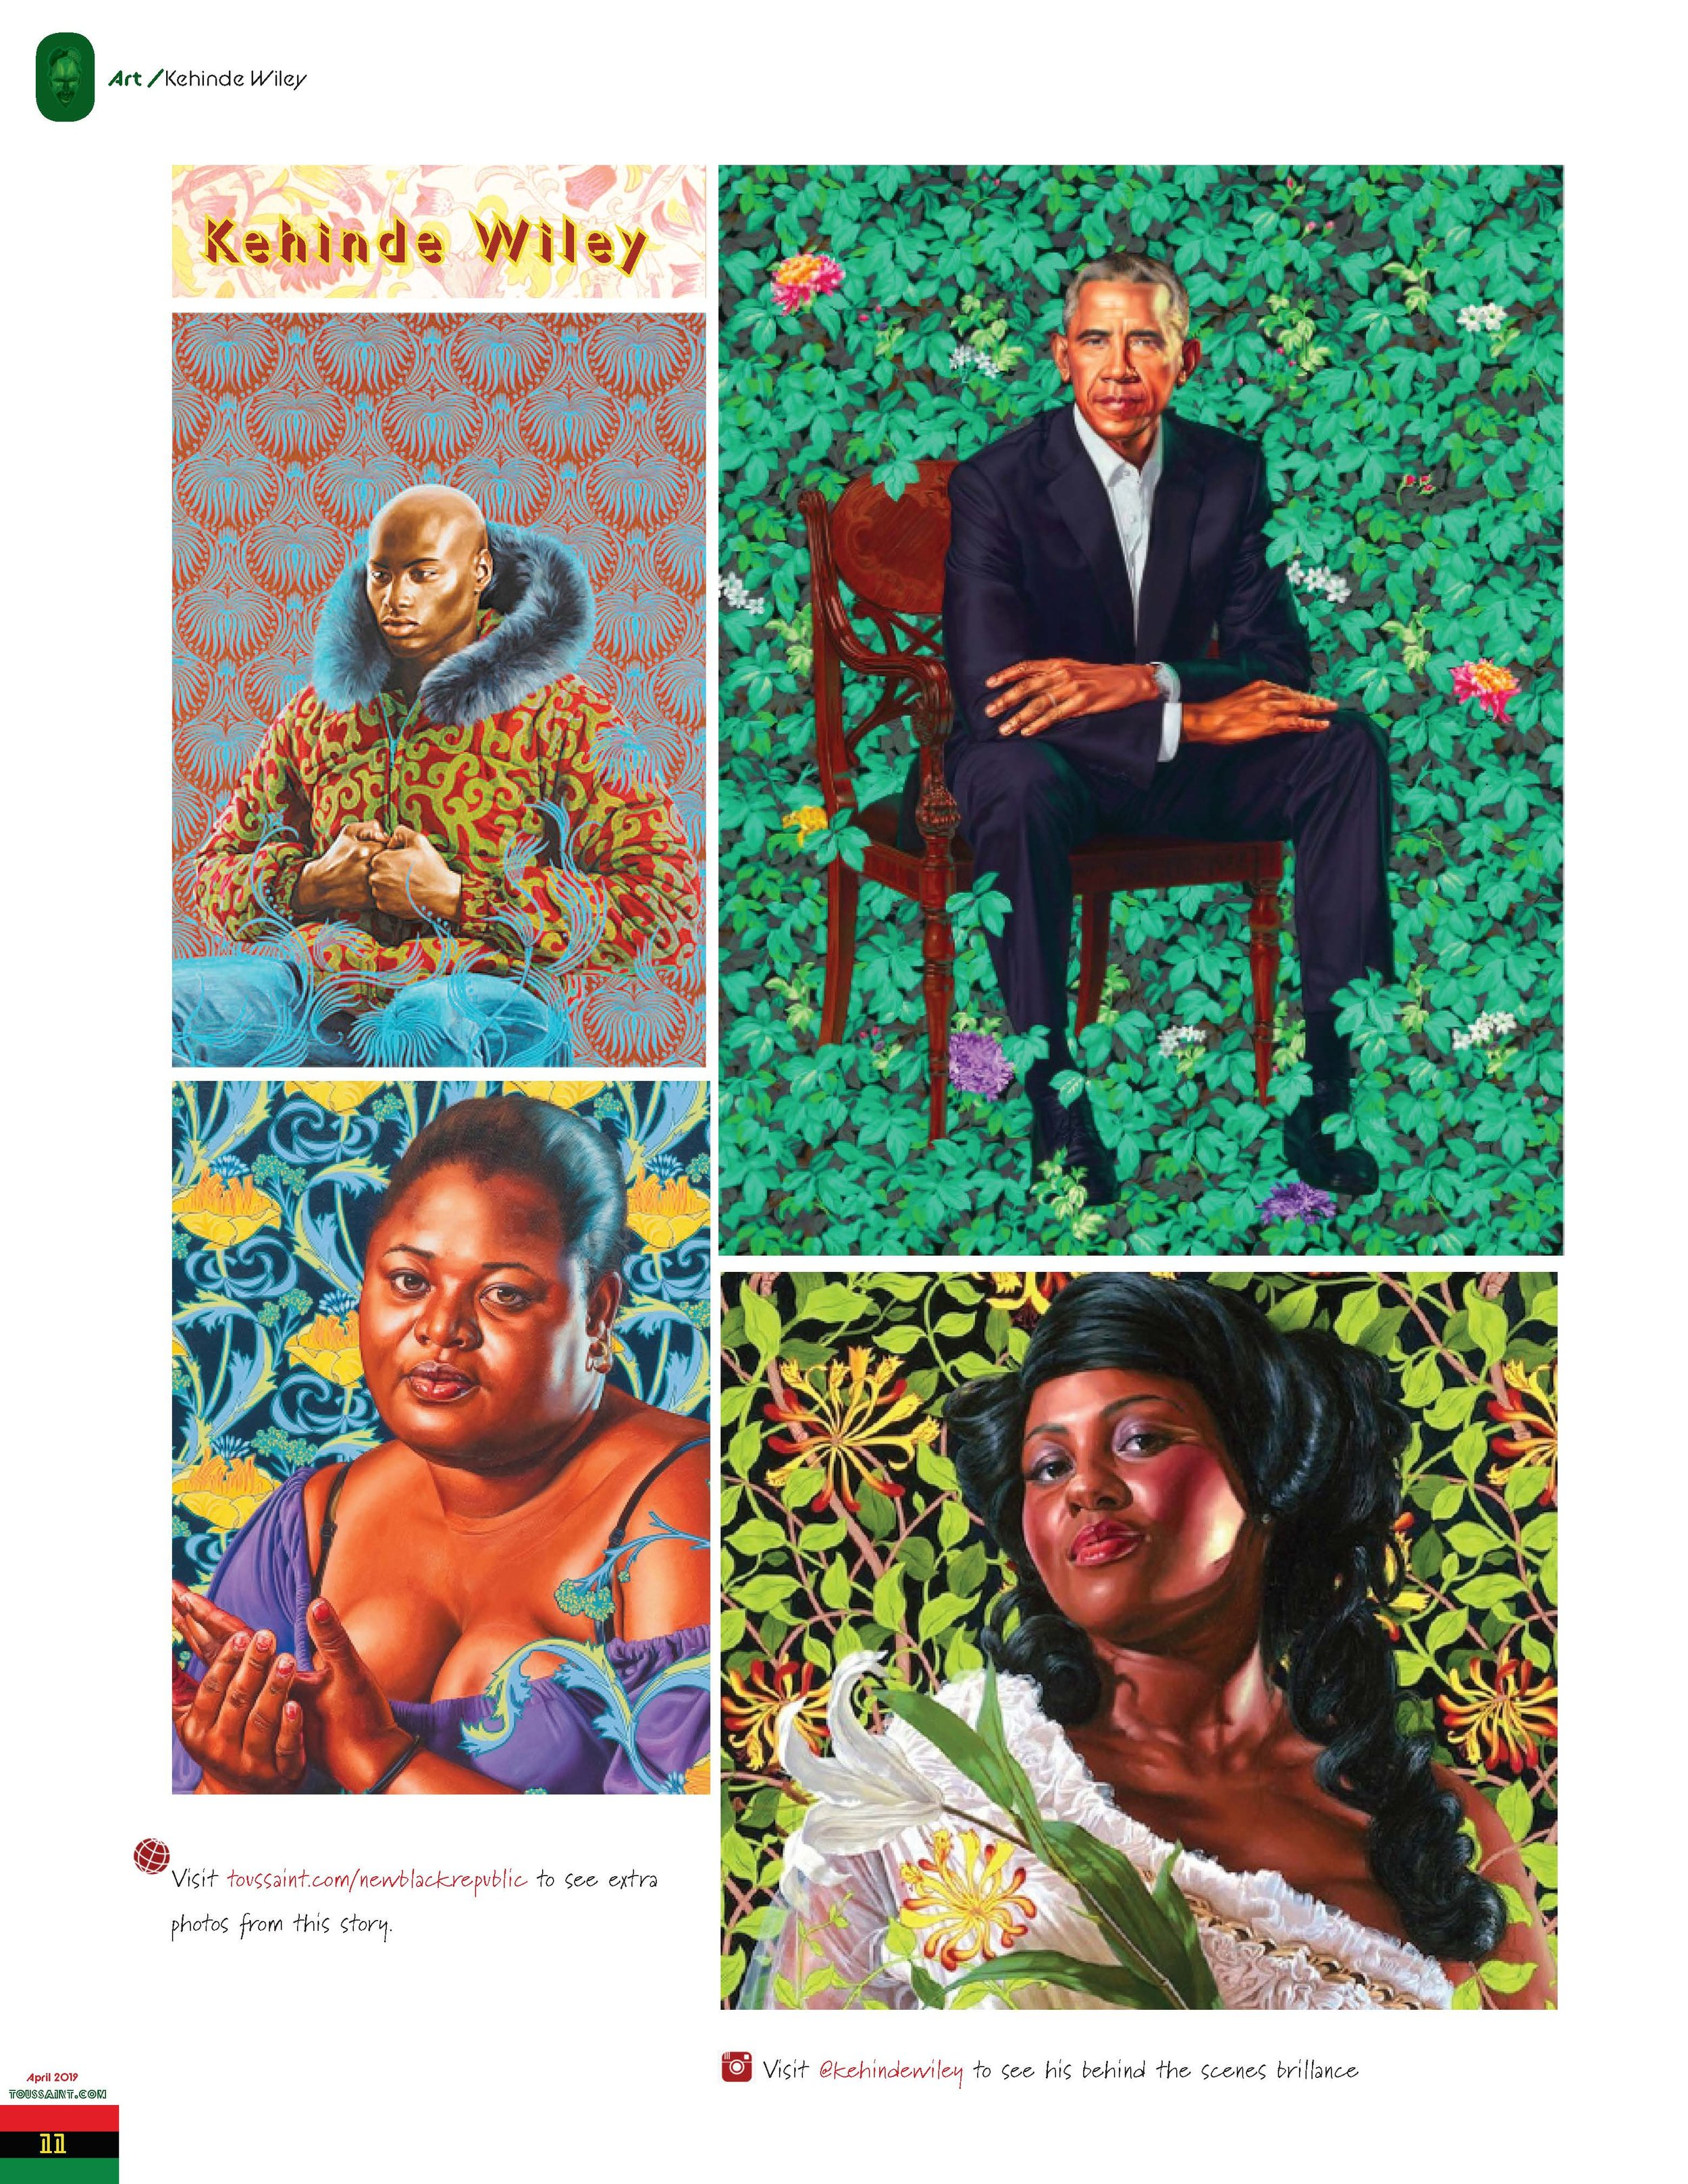 Second attempt at Kehinde Wiley's article